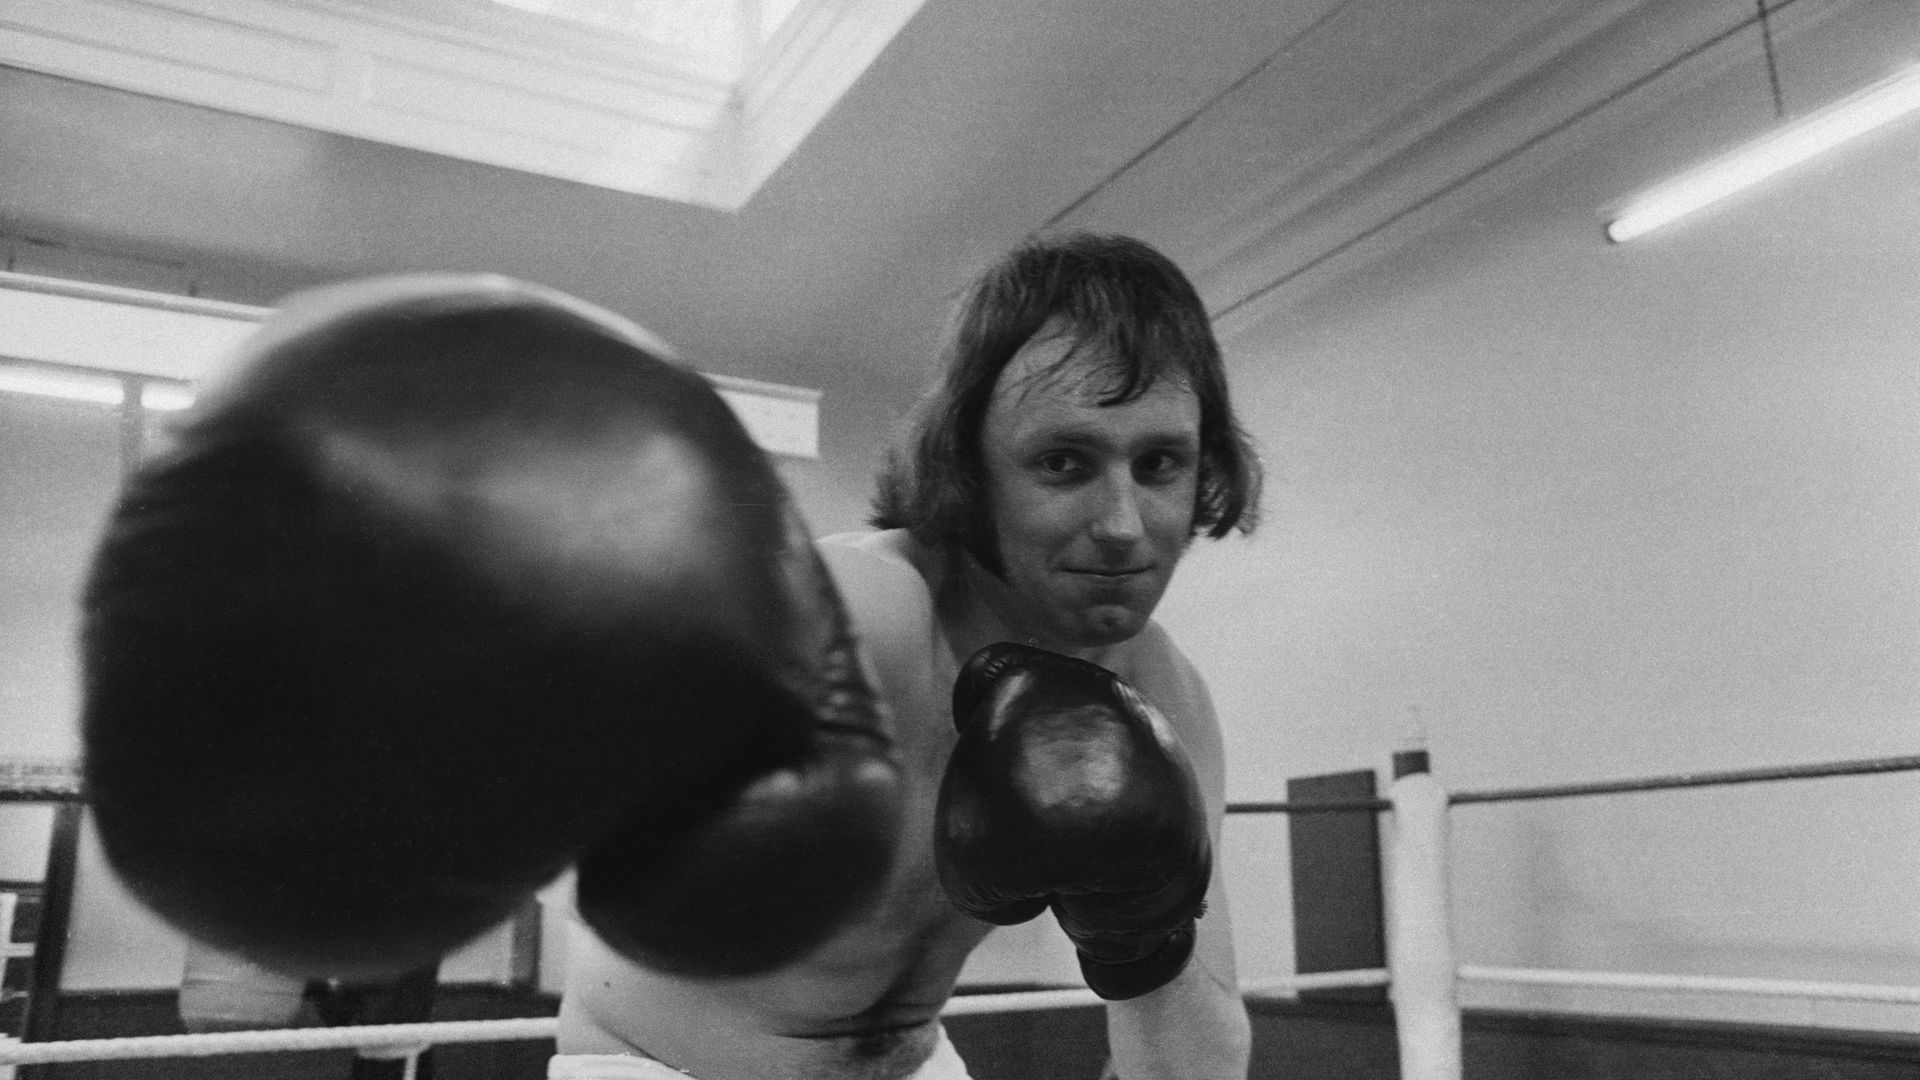 Paul Dacre, then reporter for the Daily Express, training in the boxing ring at a gym in 1972 - Credit: Getty Images